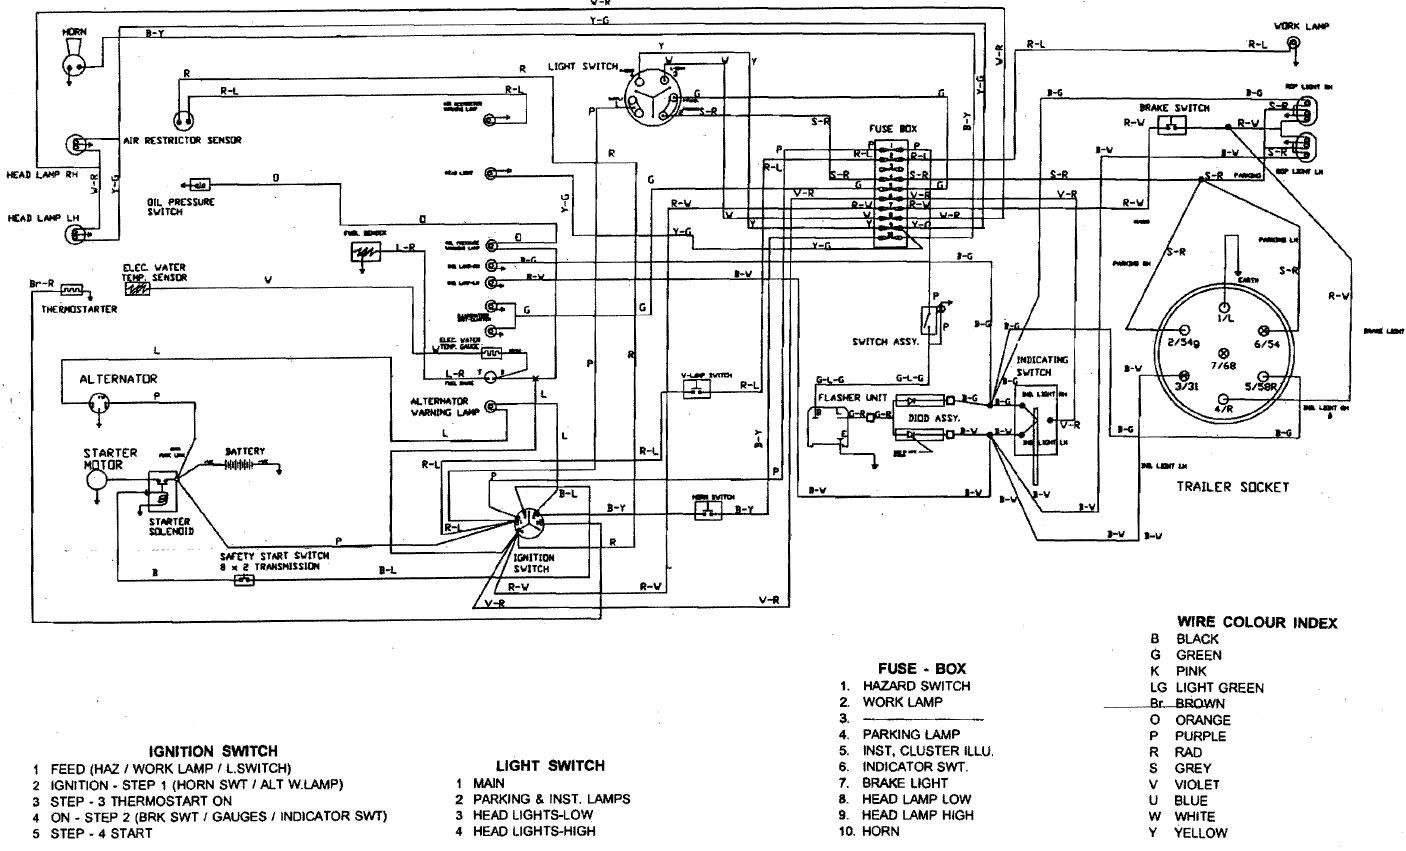 [SCHEMATICS_48IU]  169 Kubota Tractor Mx5100 Electric Wiring Diagram | Wiring Library | Kubota Mx5100 Wiring Diagram |  | Wiring Library